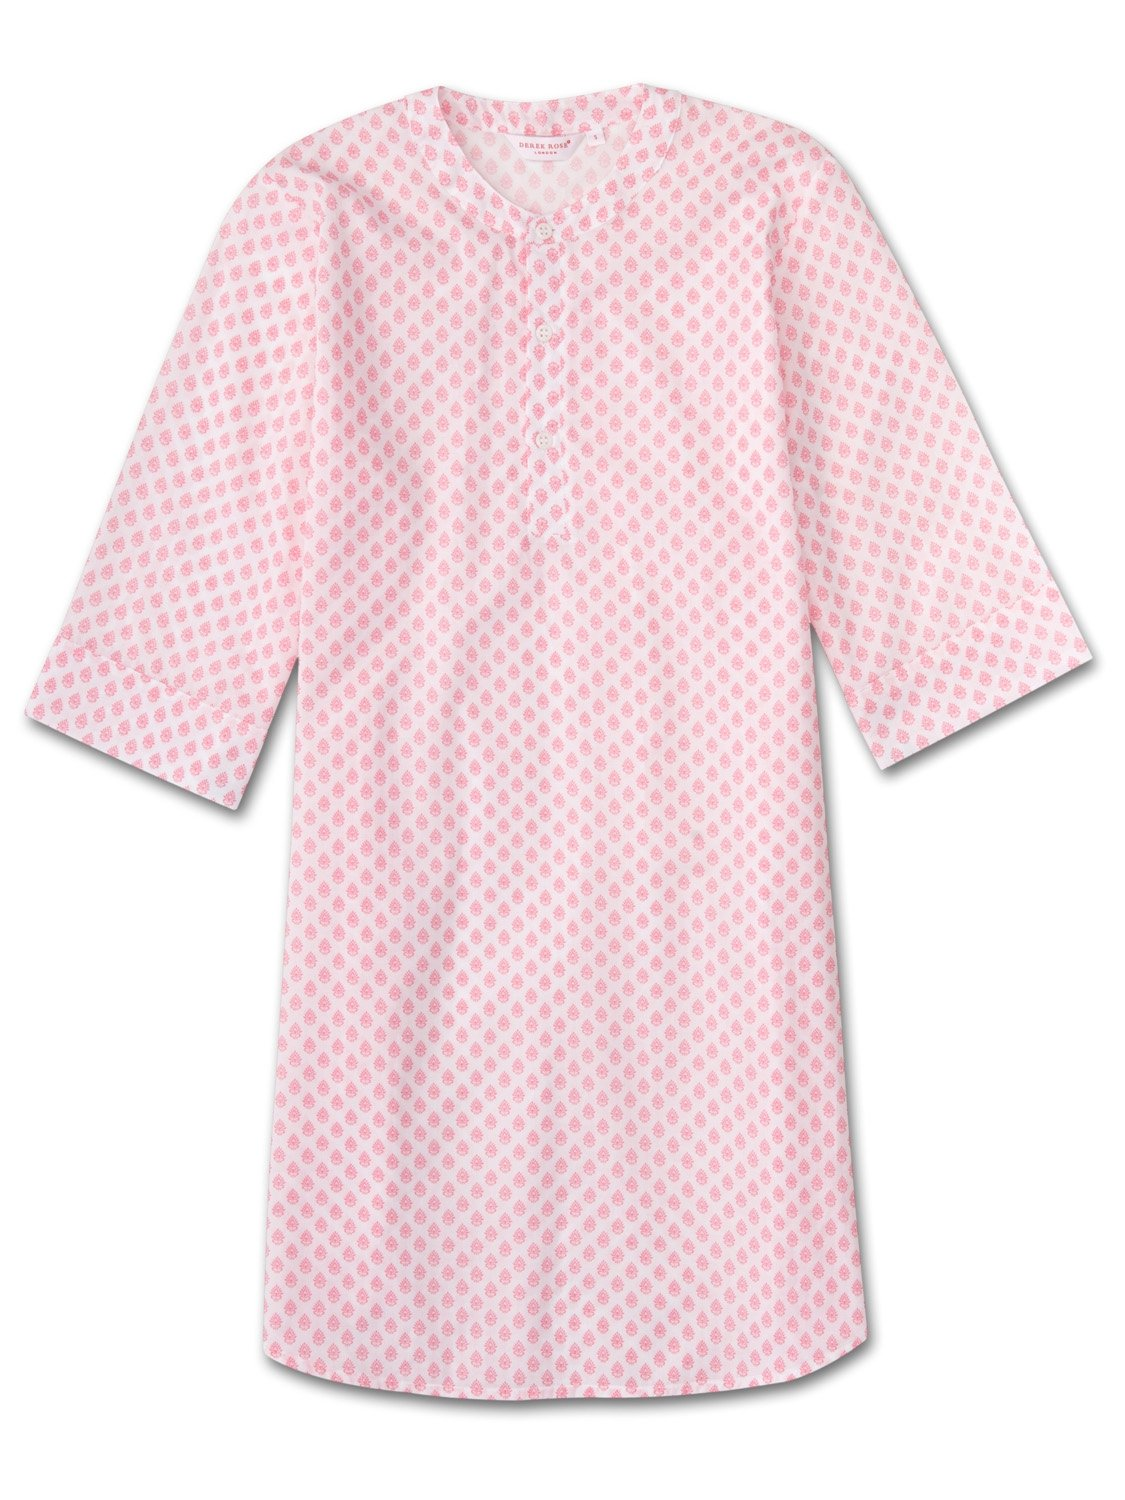 Women's Kaftan Nightshirt Ledbury 9 Cotton Batiste White